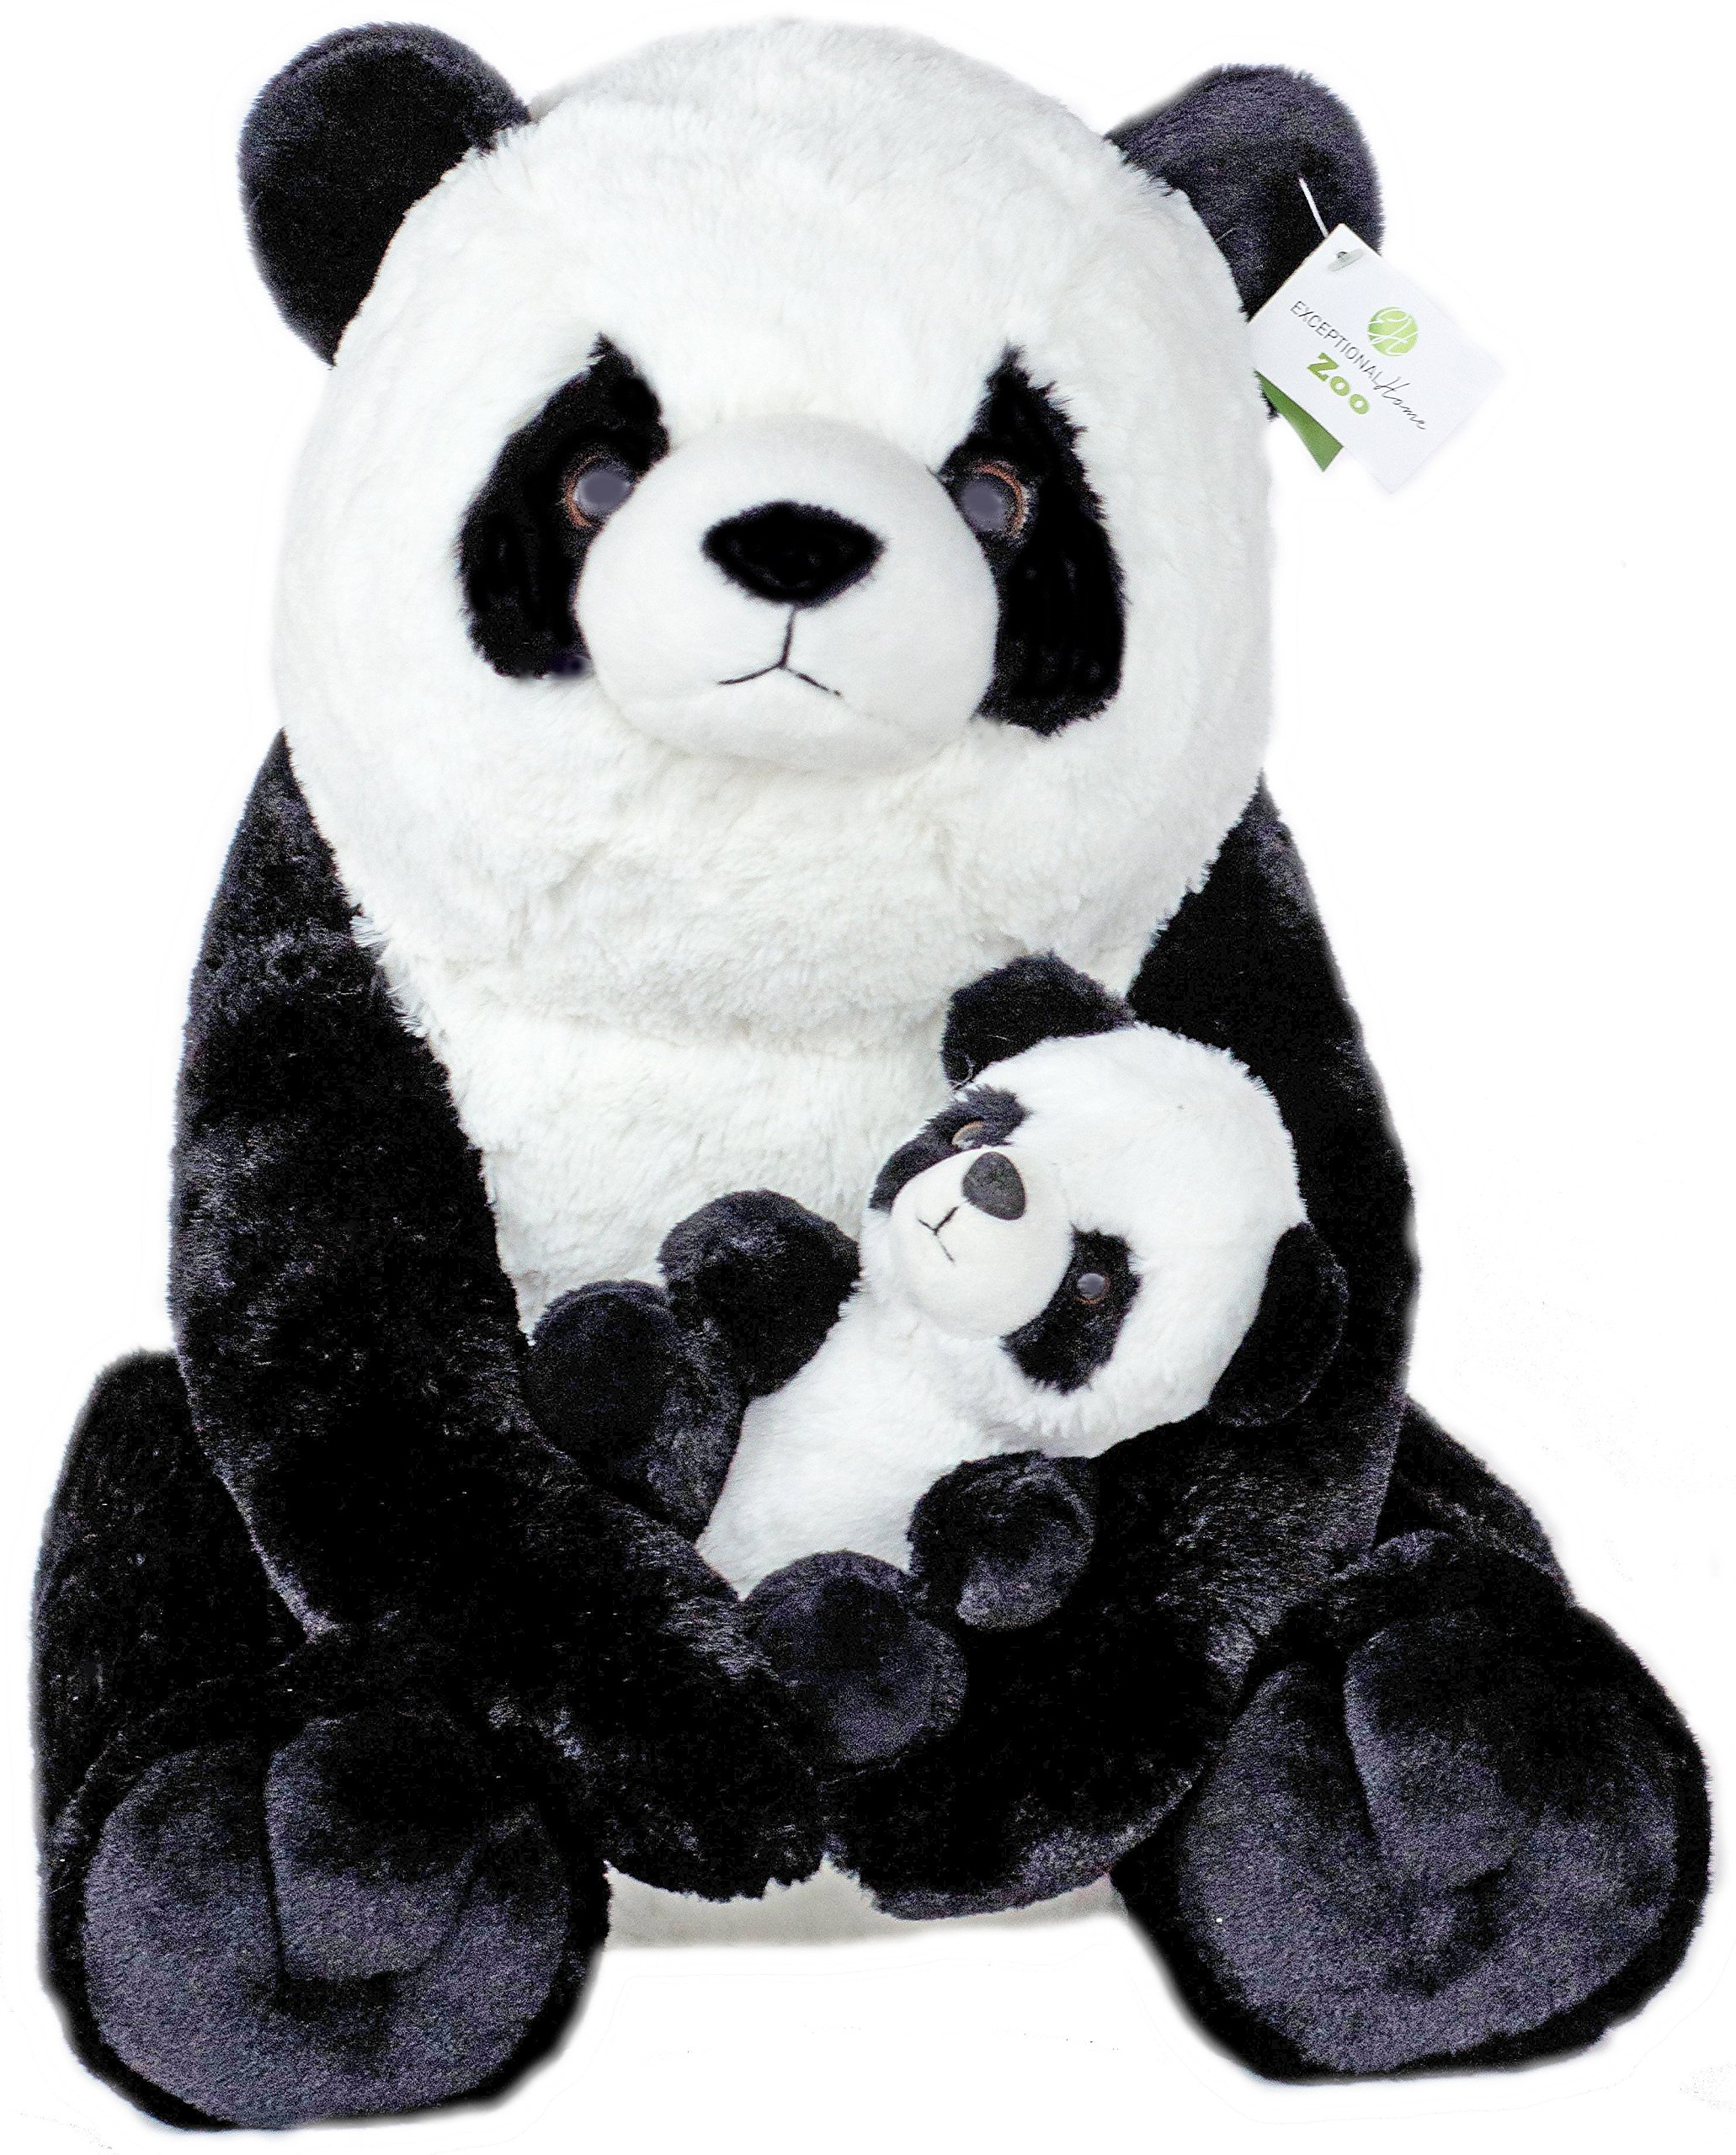 Exceptional Home Giant Pandas Plush Stuffed Animals. 18 inch Teddy Bear with Baby Panda. Kids Toys Gift by Exceptional Home